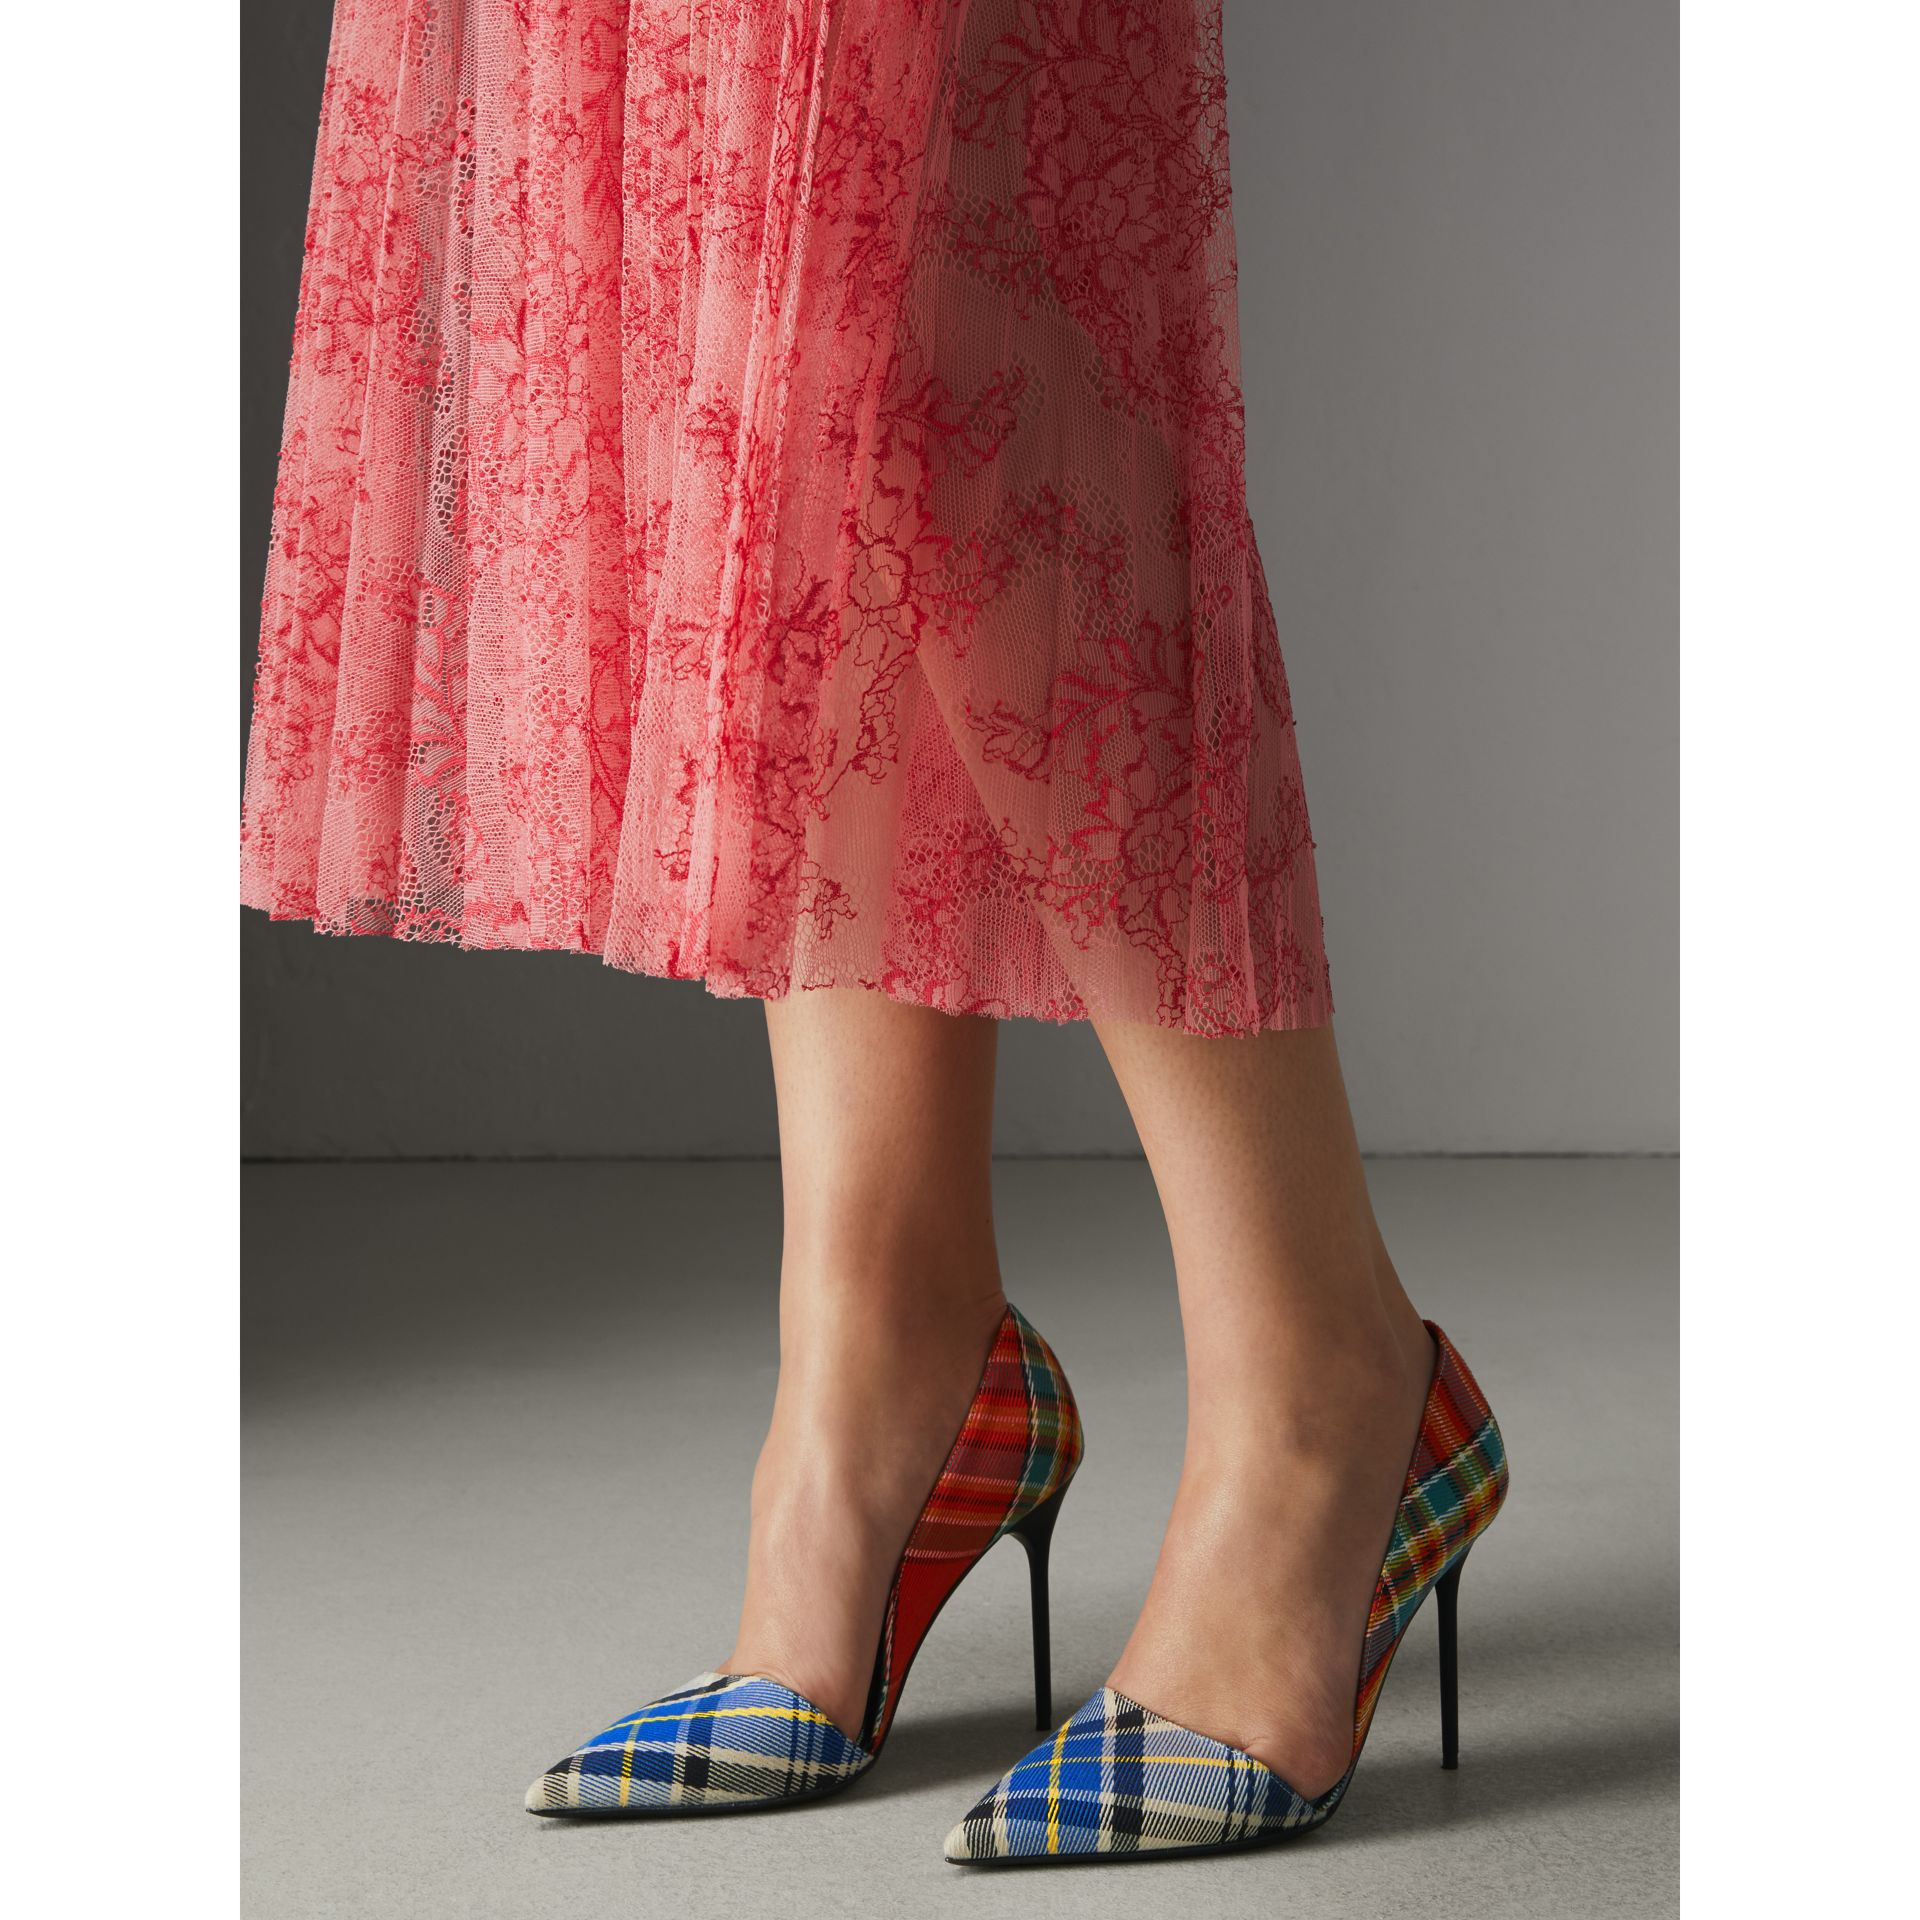 Escarpins en coton tartan (Orange Coquelicot) - Femme | Burberry Canada - photo de la galerie 2